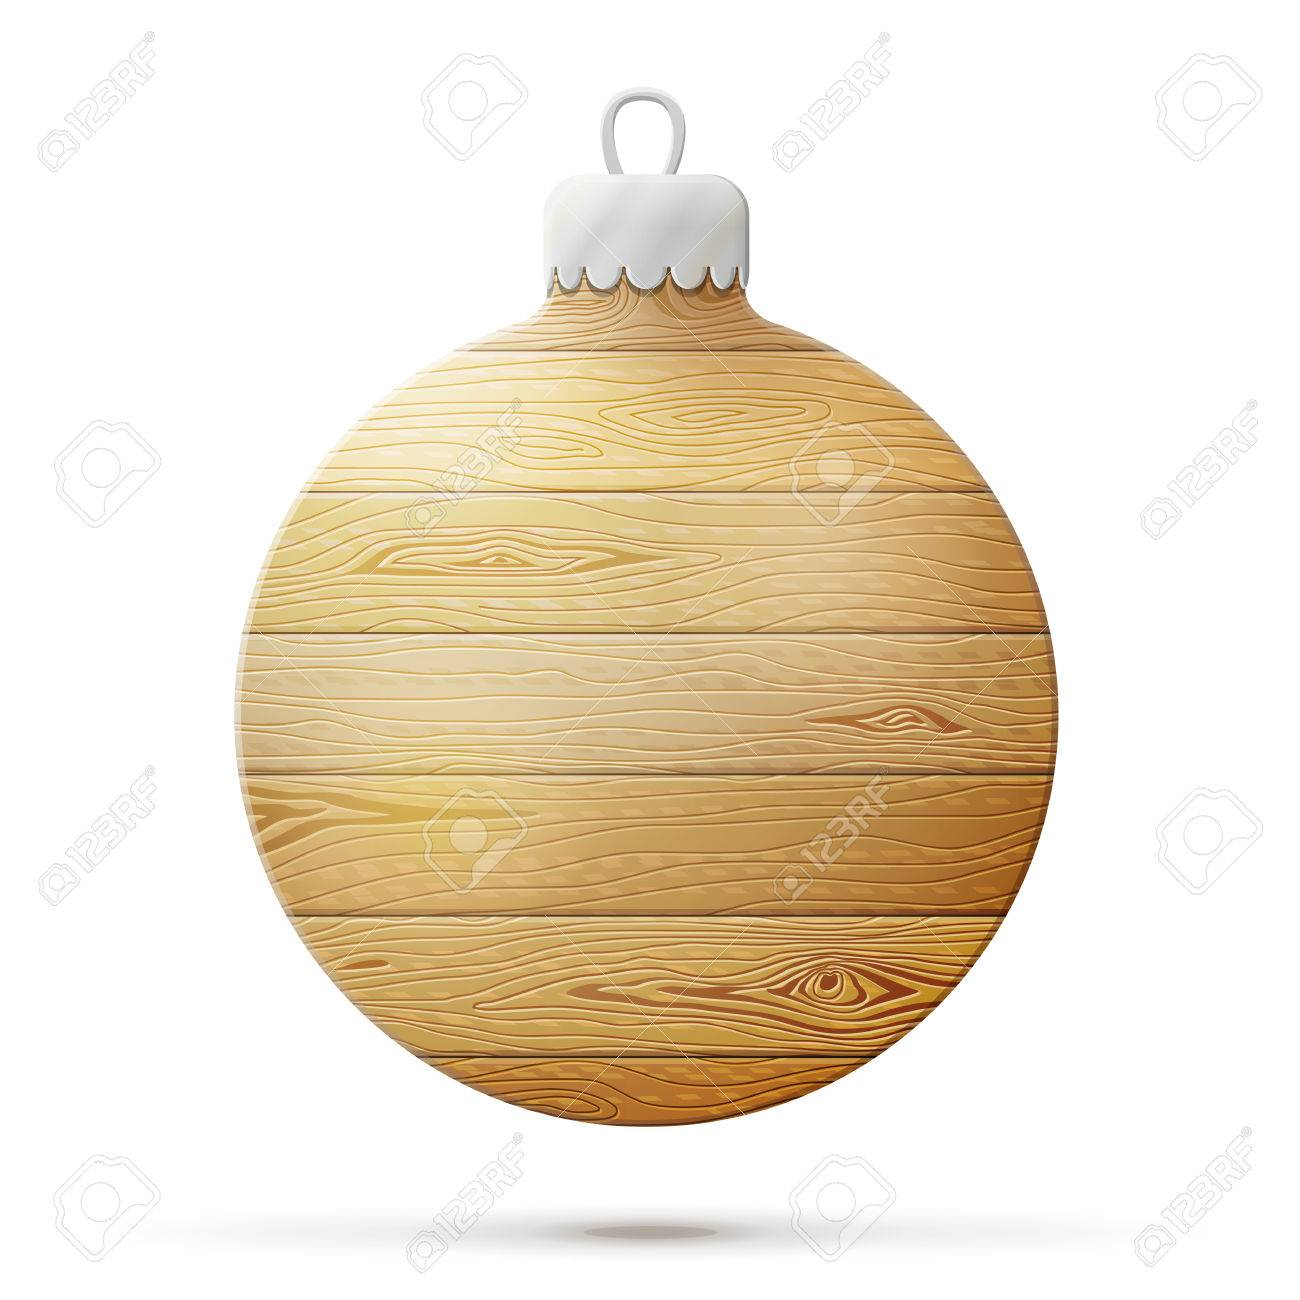 53cece8f6d6b0 Holiday bauble of wood isolated on white. Wooden planks in shape of  christmas tree ball